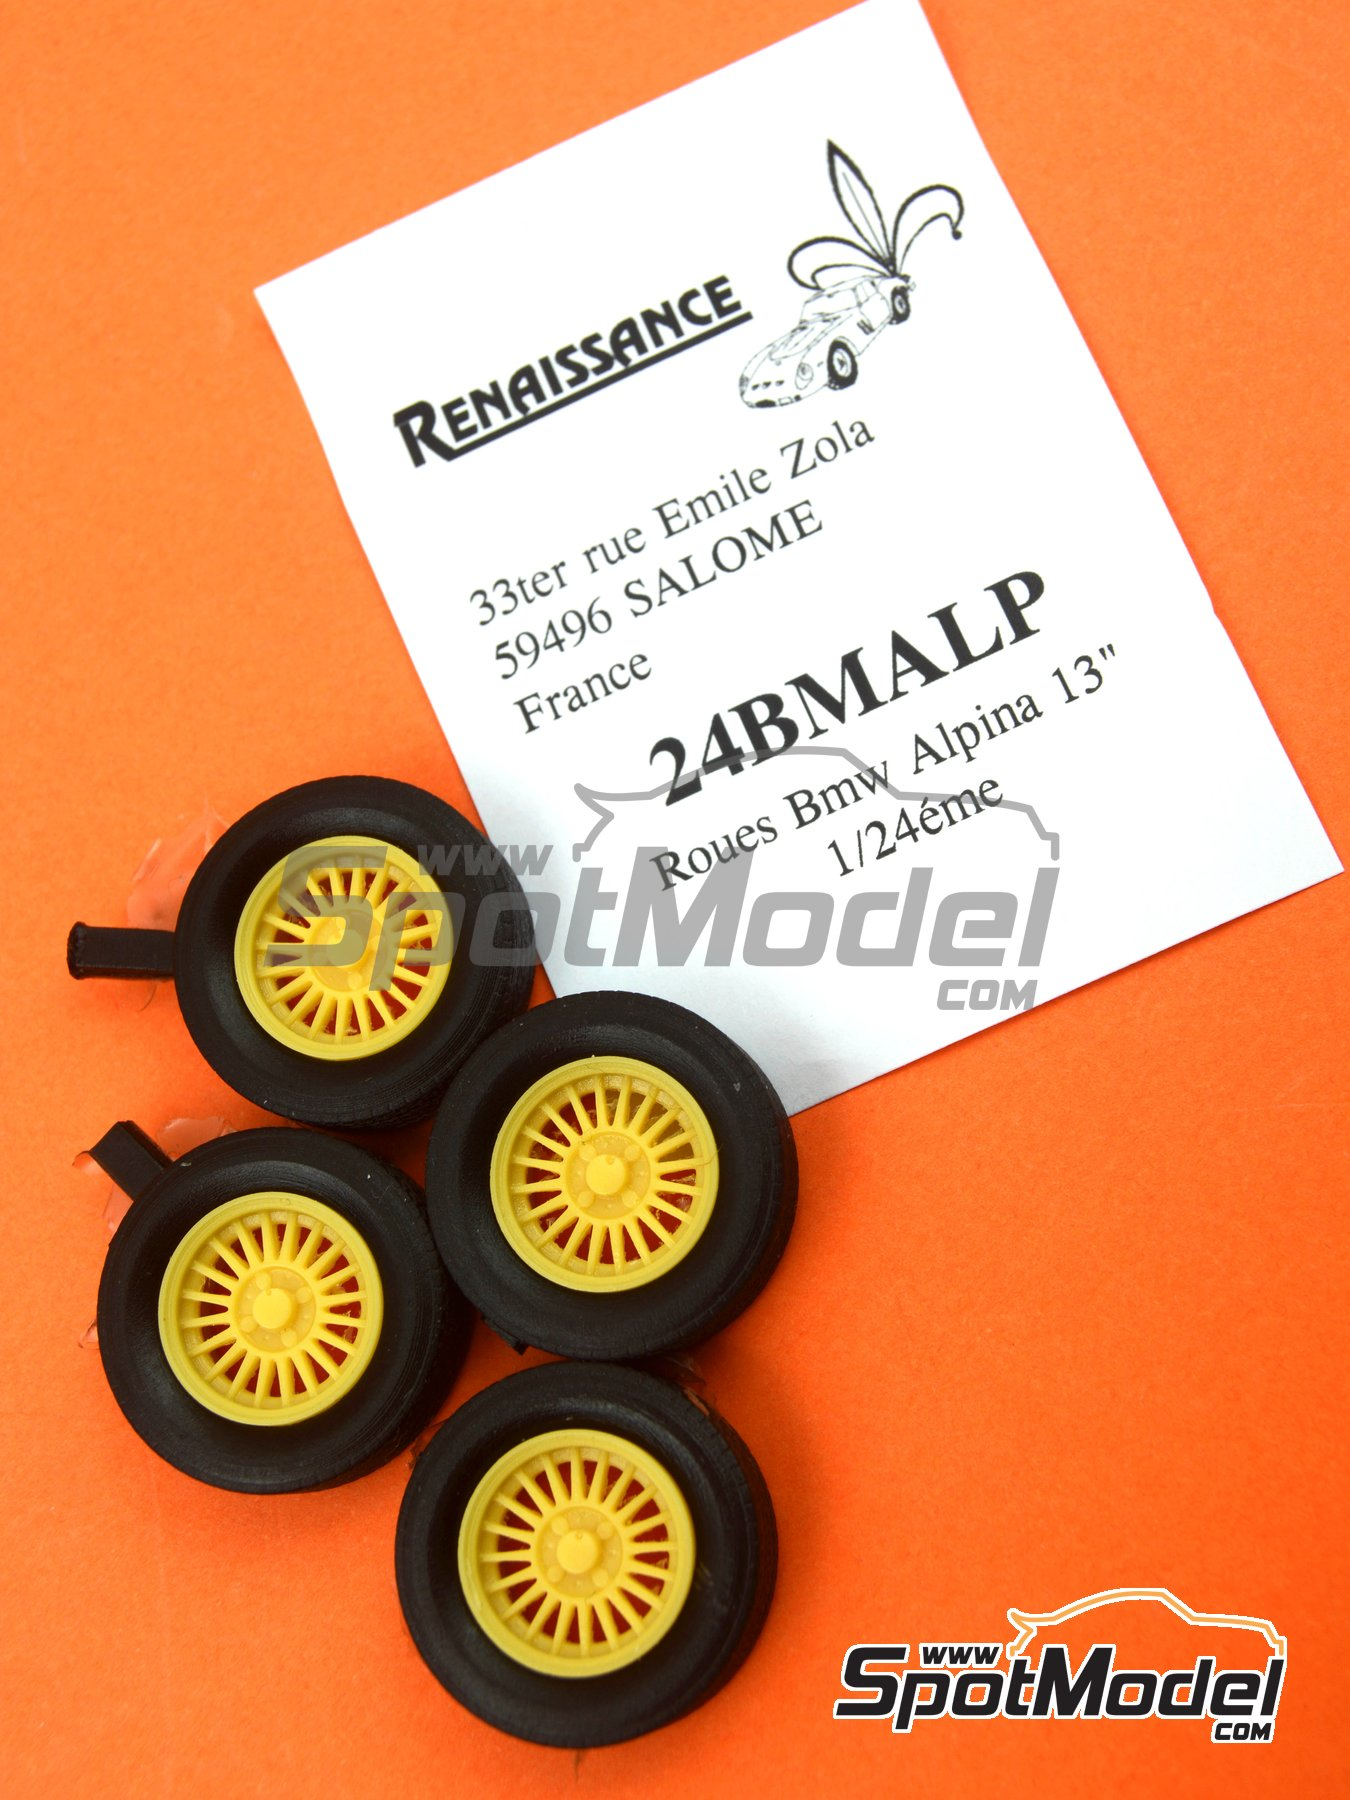 Alpina 13 inches 4 nuts | Rims and tyres set in 1/24 scale manufactured by Renaissance Models (ref. 24BMALP) image